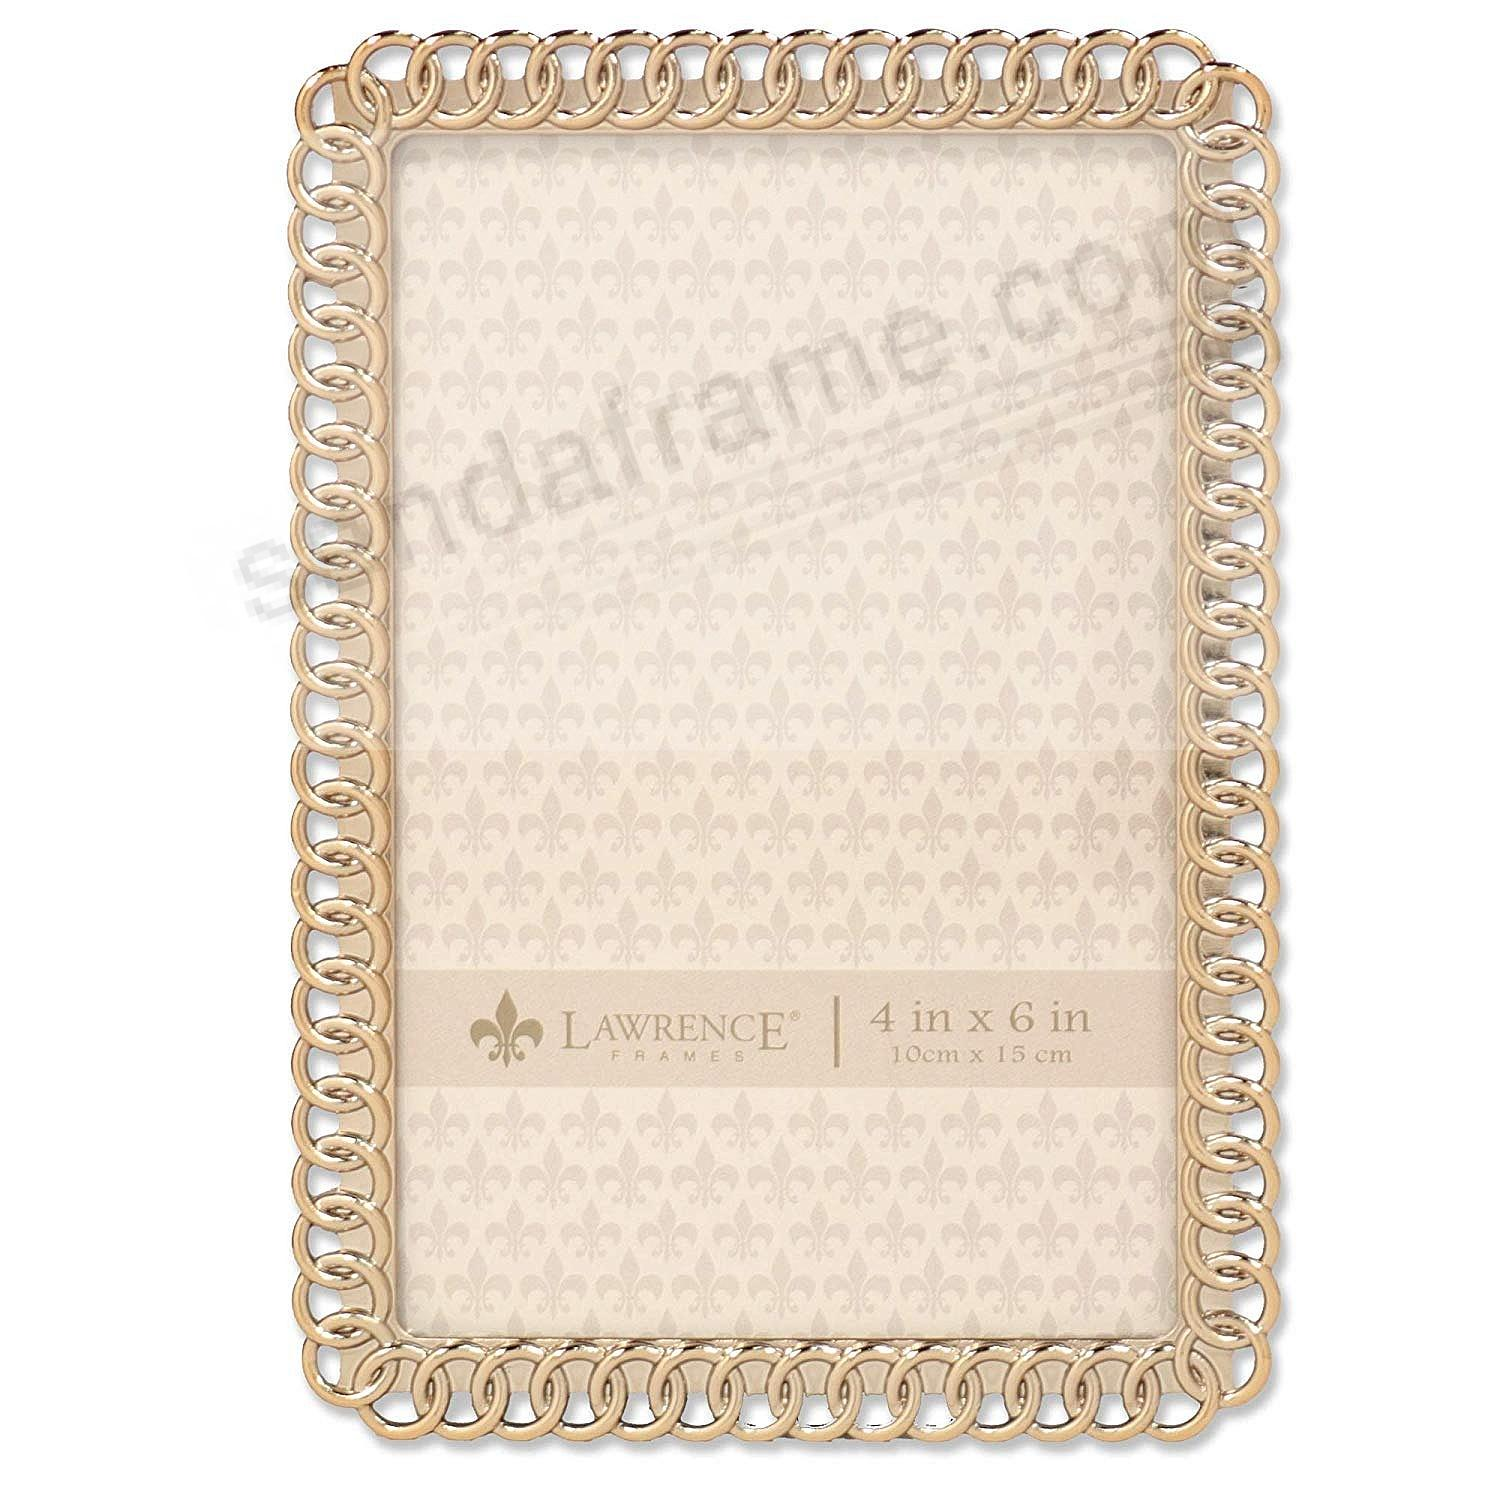 ETERNITY RINGS goldplate 4x6 frame by Lawrence®